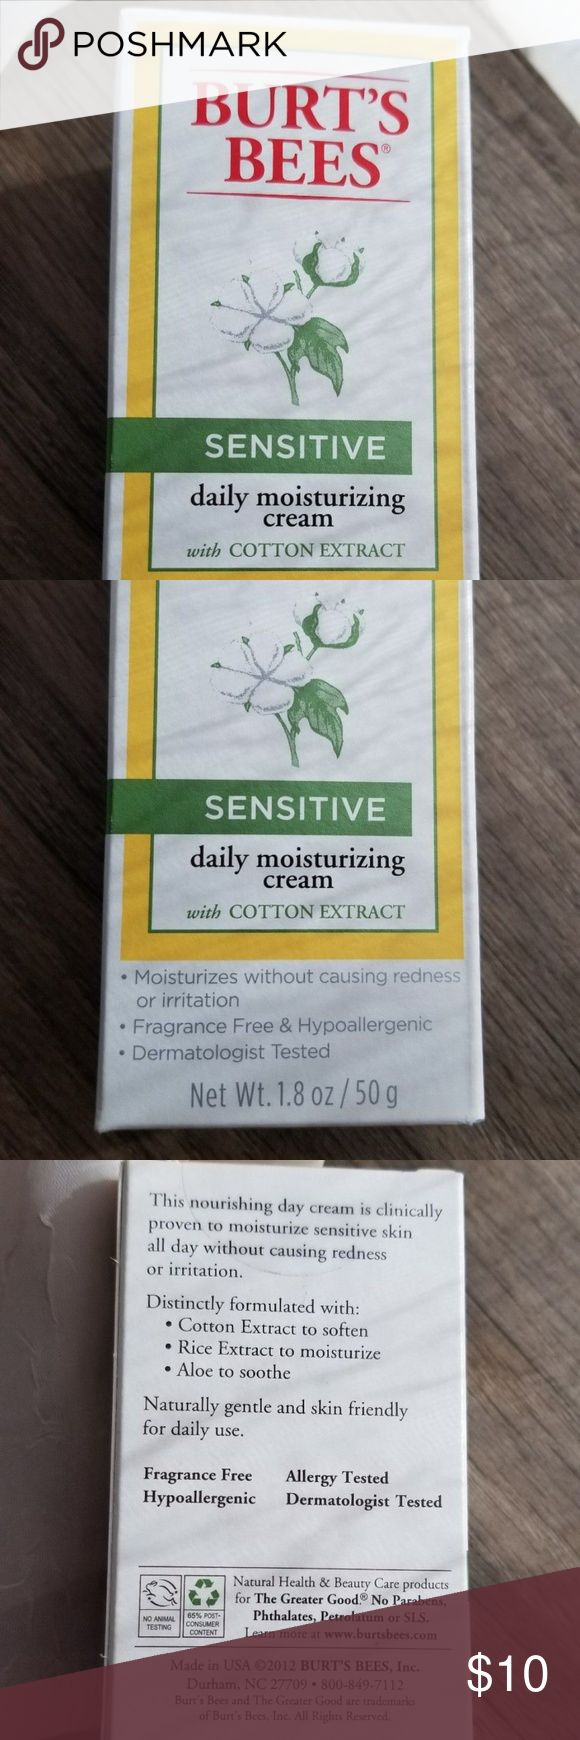 NIB Burt's Bees Sensitive Daily Moisturizing Cream New in box, never used Burt's Bees face cream. Item description:  -One full-size Burt's Bees Sensitive Daily moisturizing cream with cotton extract, 1.8 oz, new in box From pet and smoke-free home. Questions? Let me know! Thanks for looking :) Burt's Bees Makeup